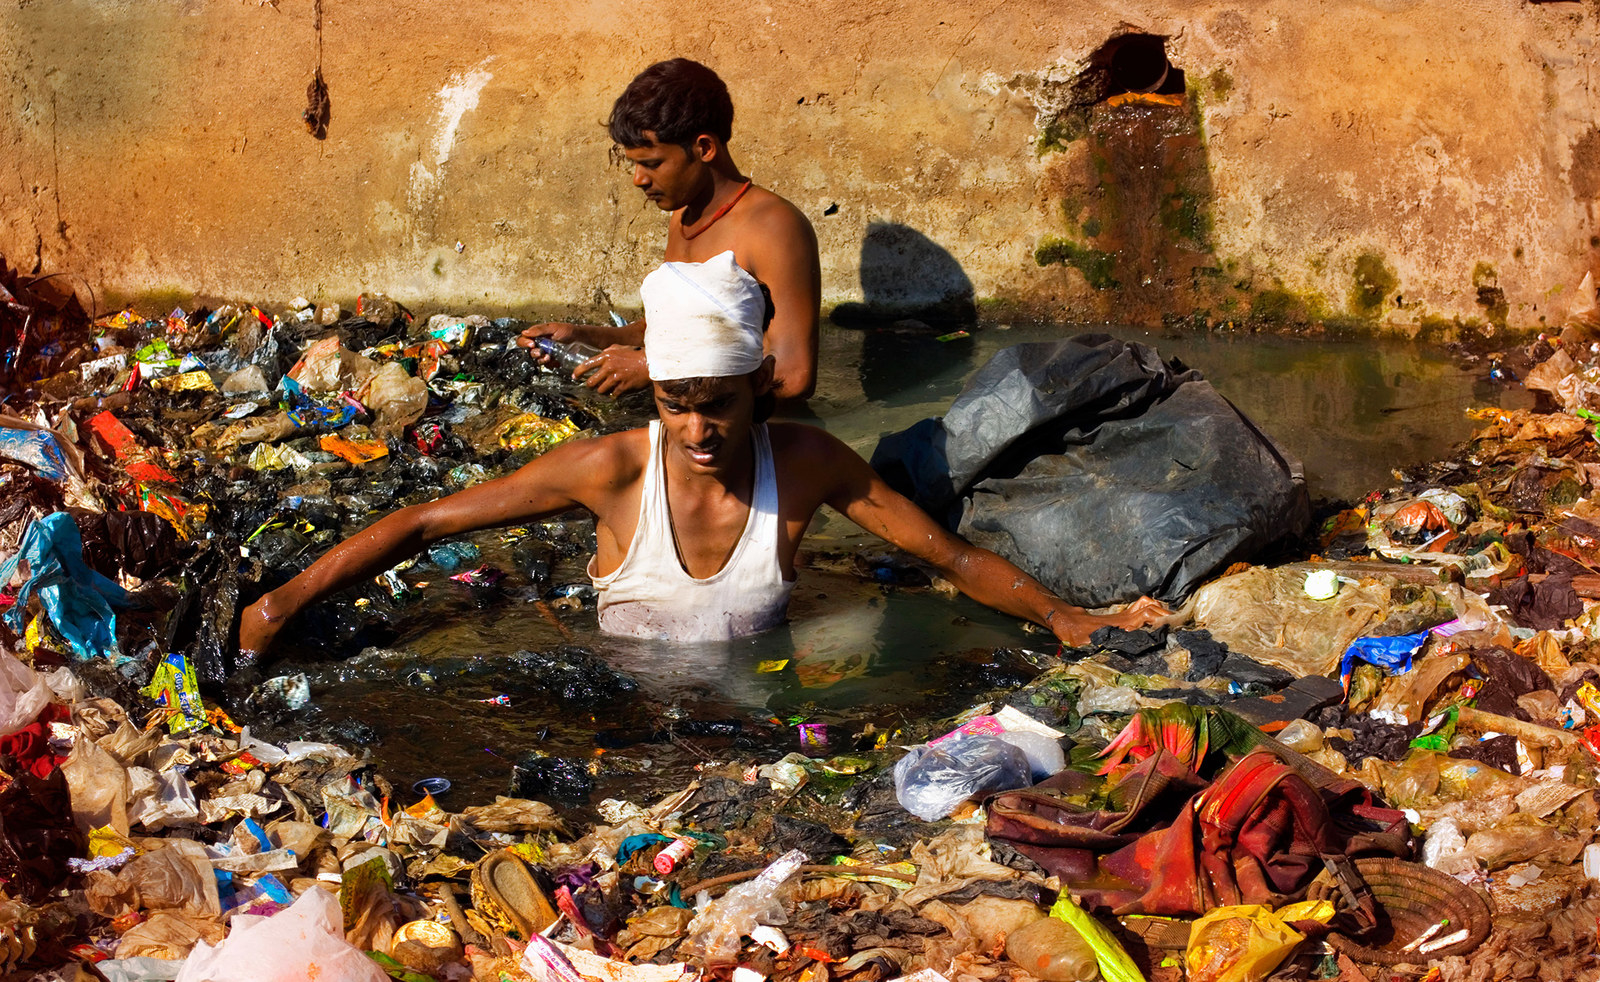 Men scavenge the polluted rivers of Mumbai on Jan. 24, 2013. This particular river is treated like an open drain by the citizens, who discharge raw sewage, industrial waste, and garbage unchecked.